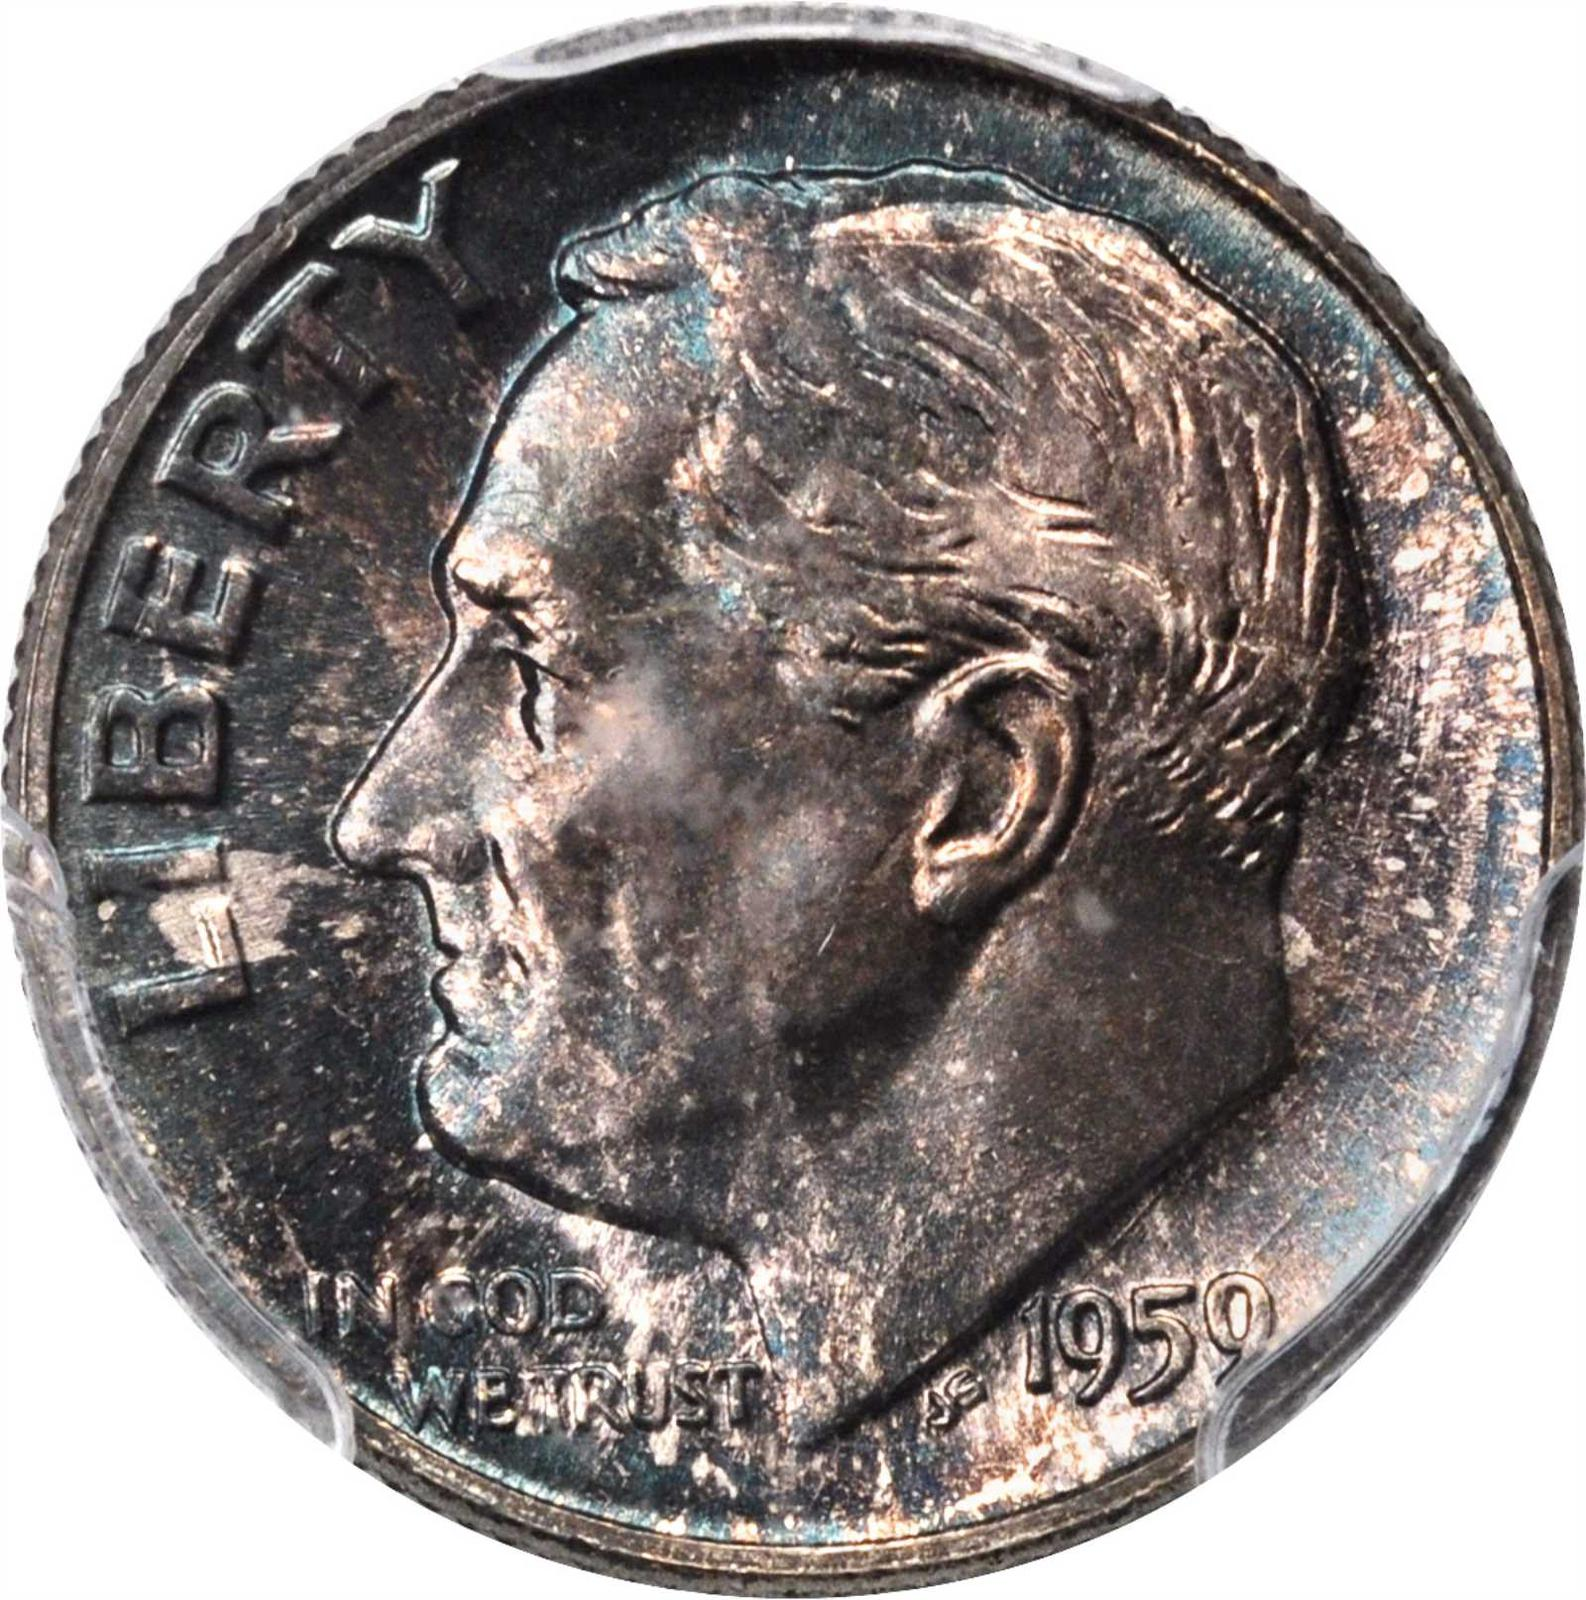 Value of 1959 Dime   Sell and Auction, Rare Coin Buyers